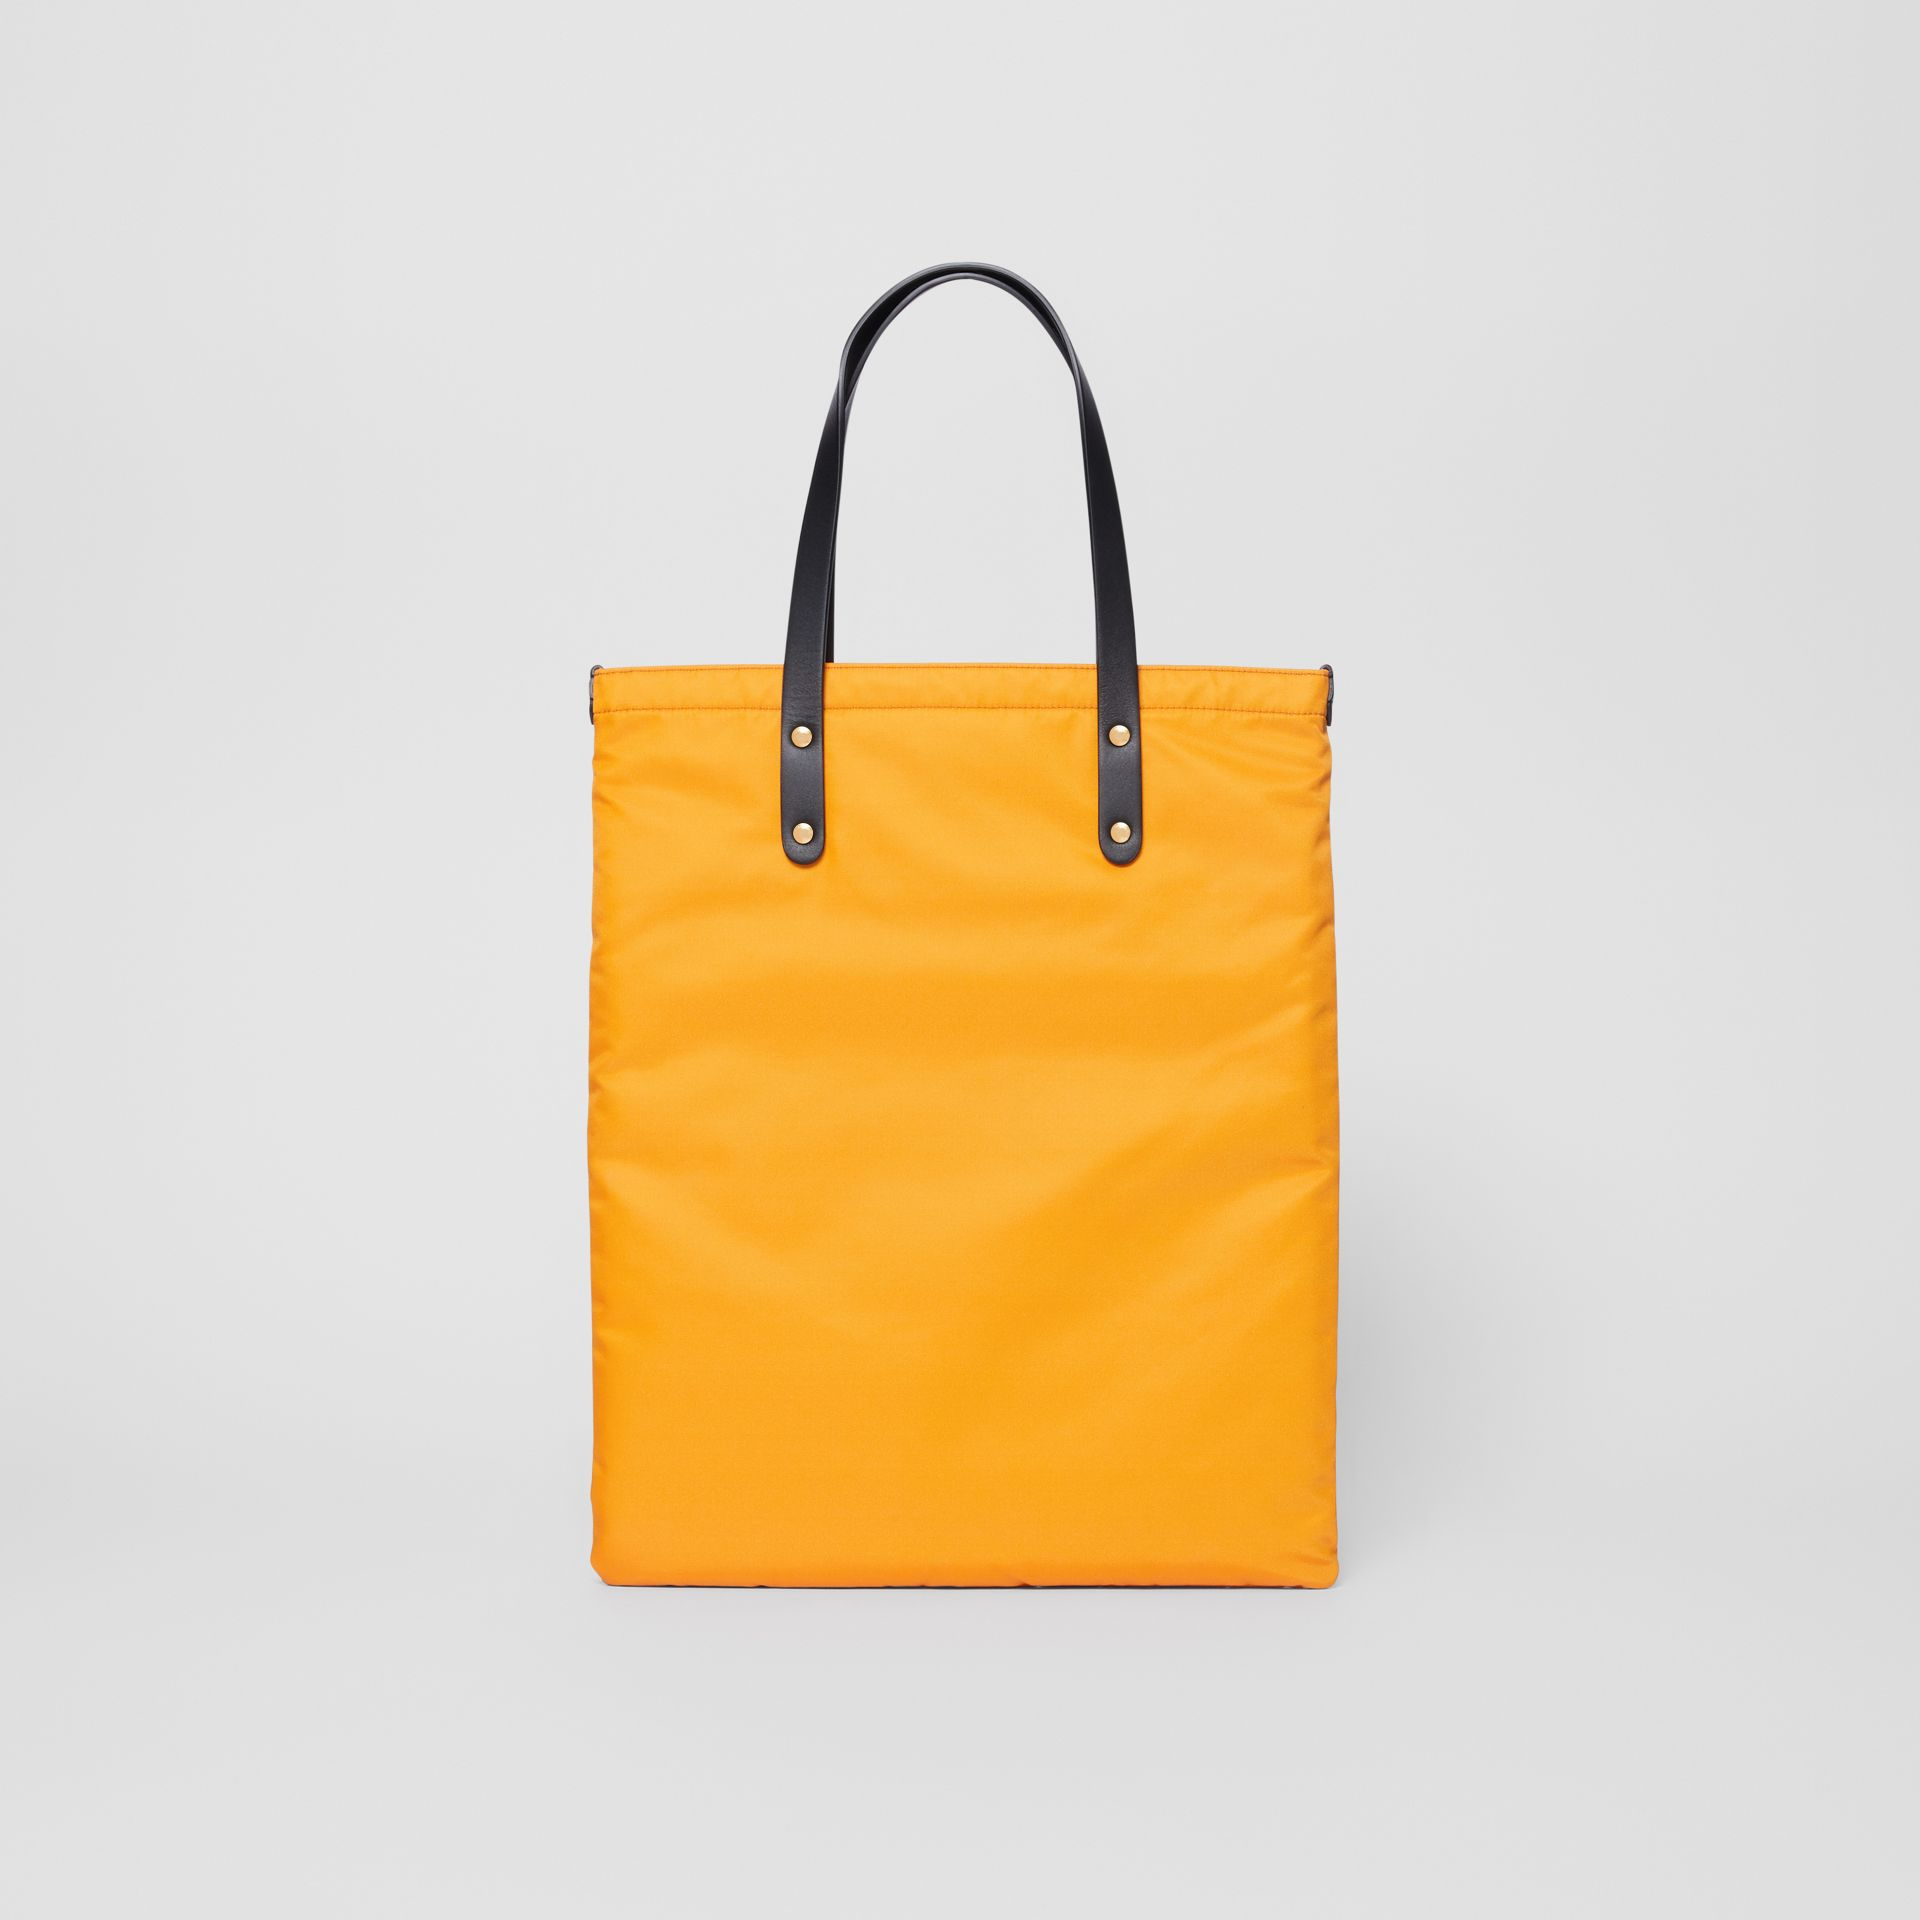 Sac tote en nylon avec logo (Orange) | Burberry - photo de la galerie 9